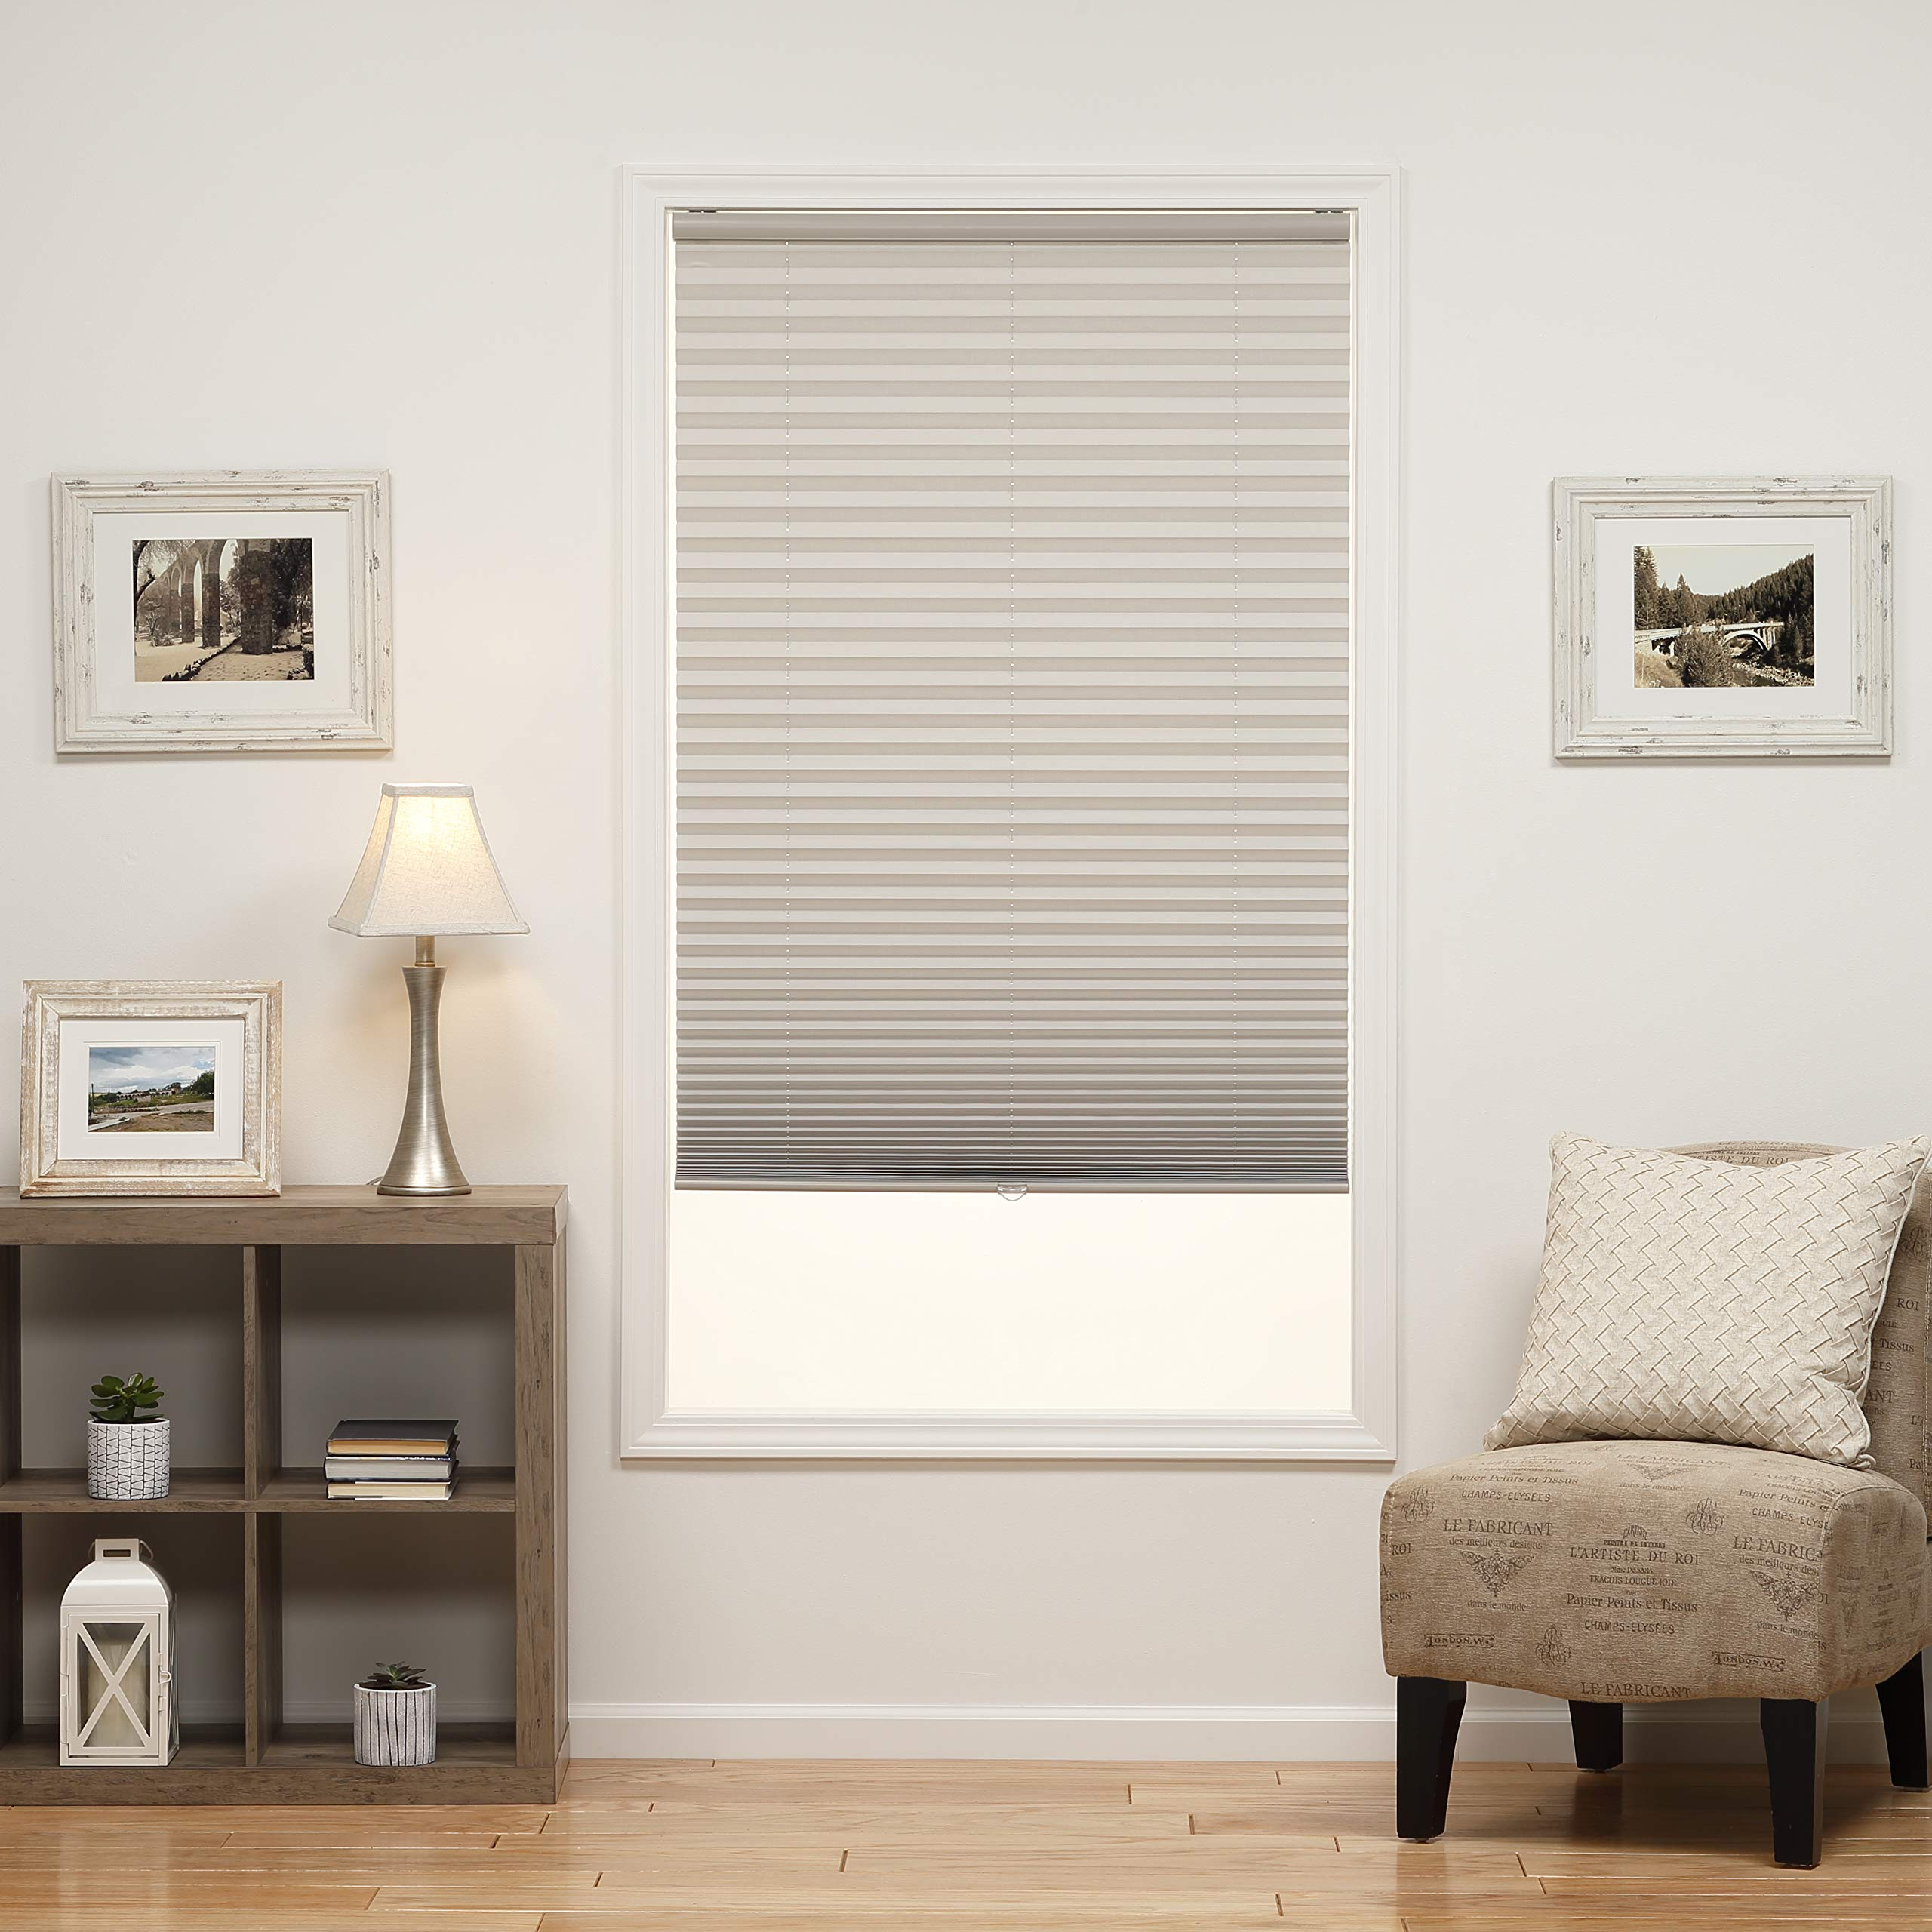 DEZ Furnishings QDLG200720 Cordless Light Filtering Pleated Shade, 20W x 72L Inches, Silver Gray by DEZ Furnishings